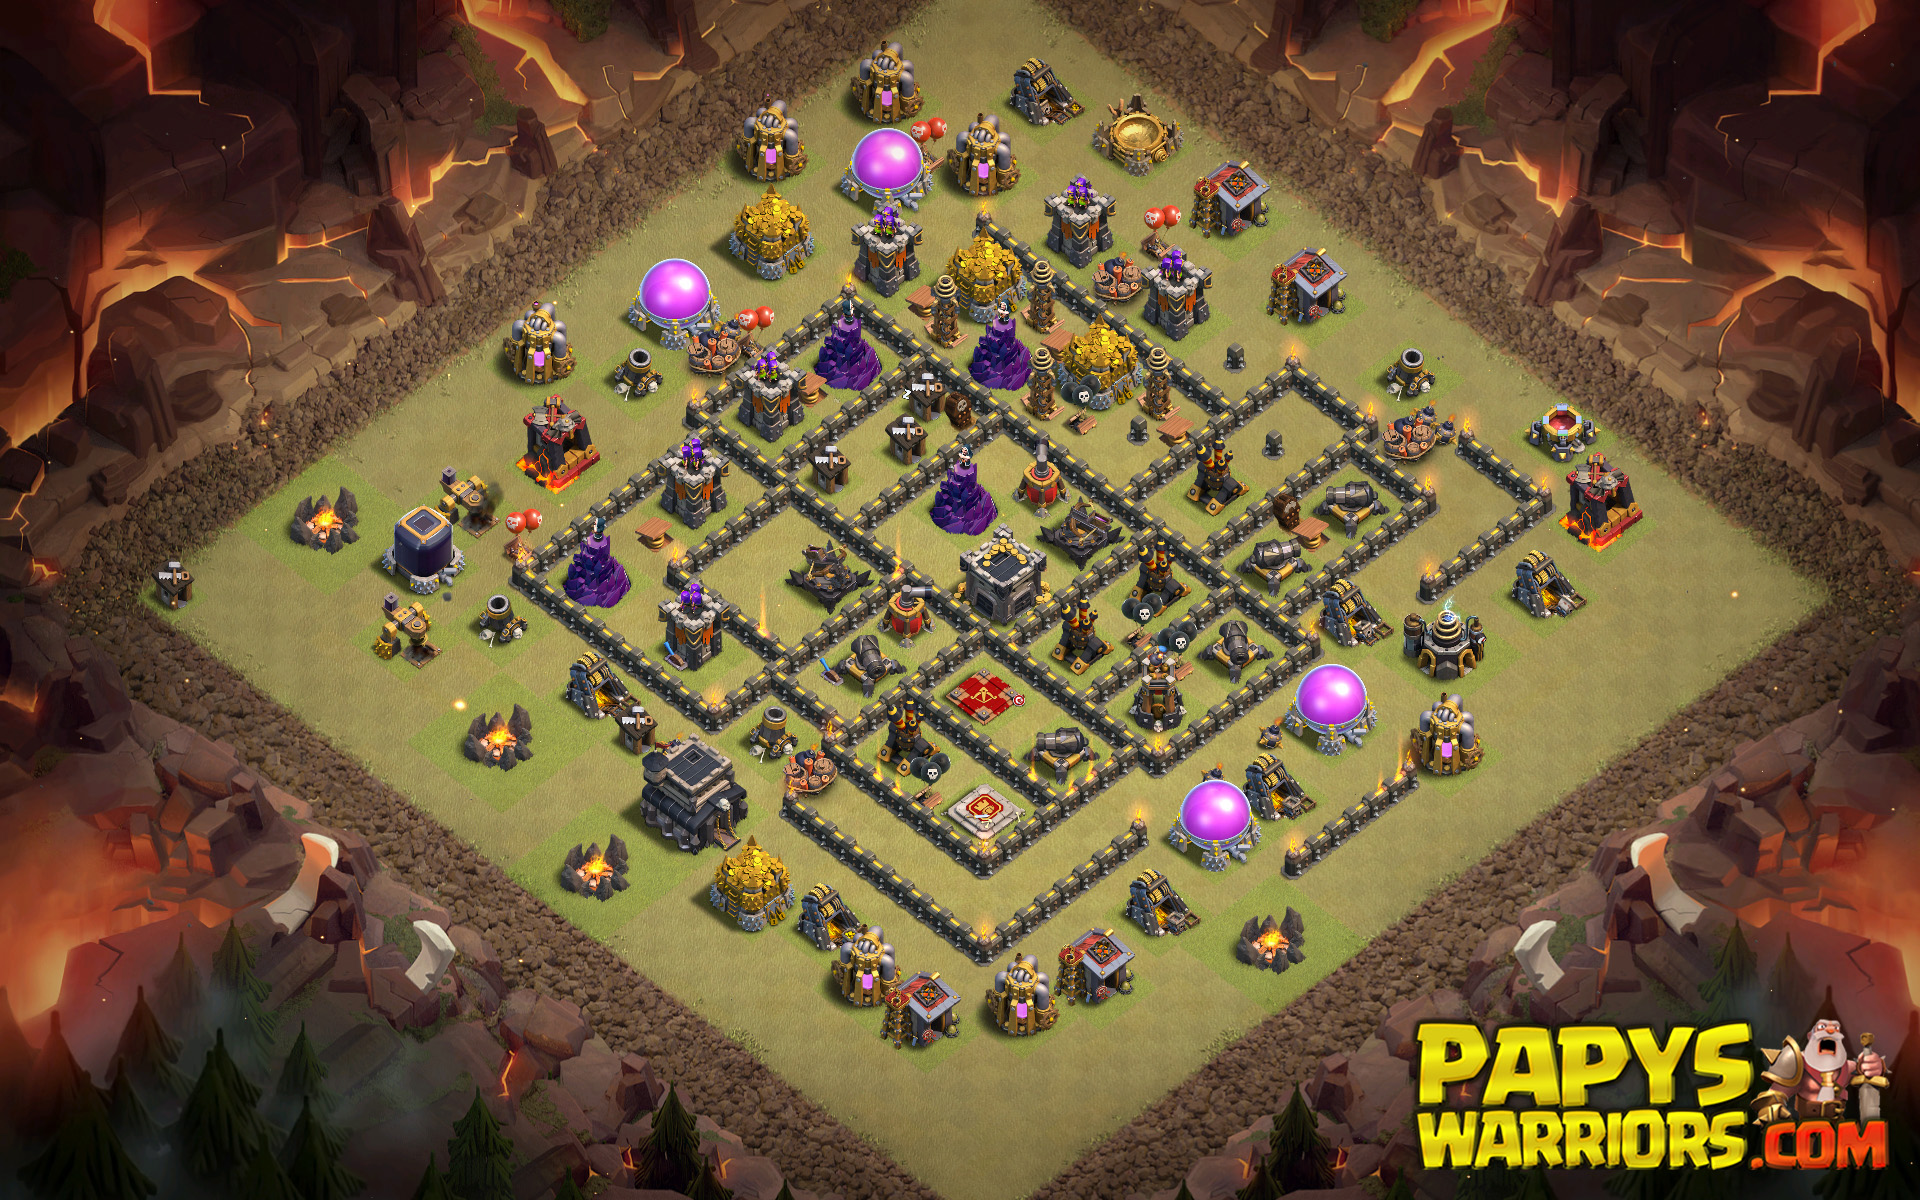 WAR BASE TH9 PAPYS WARRIORS 21